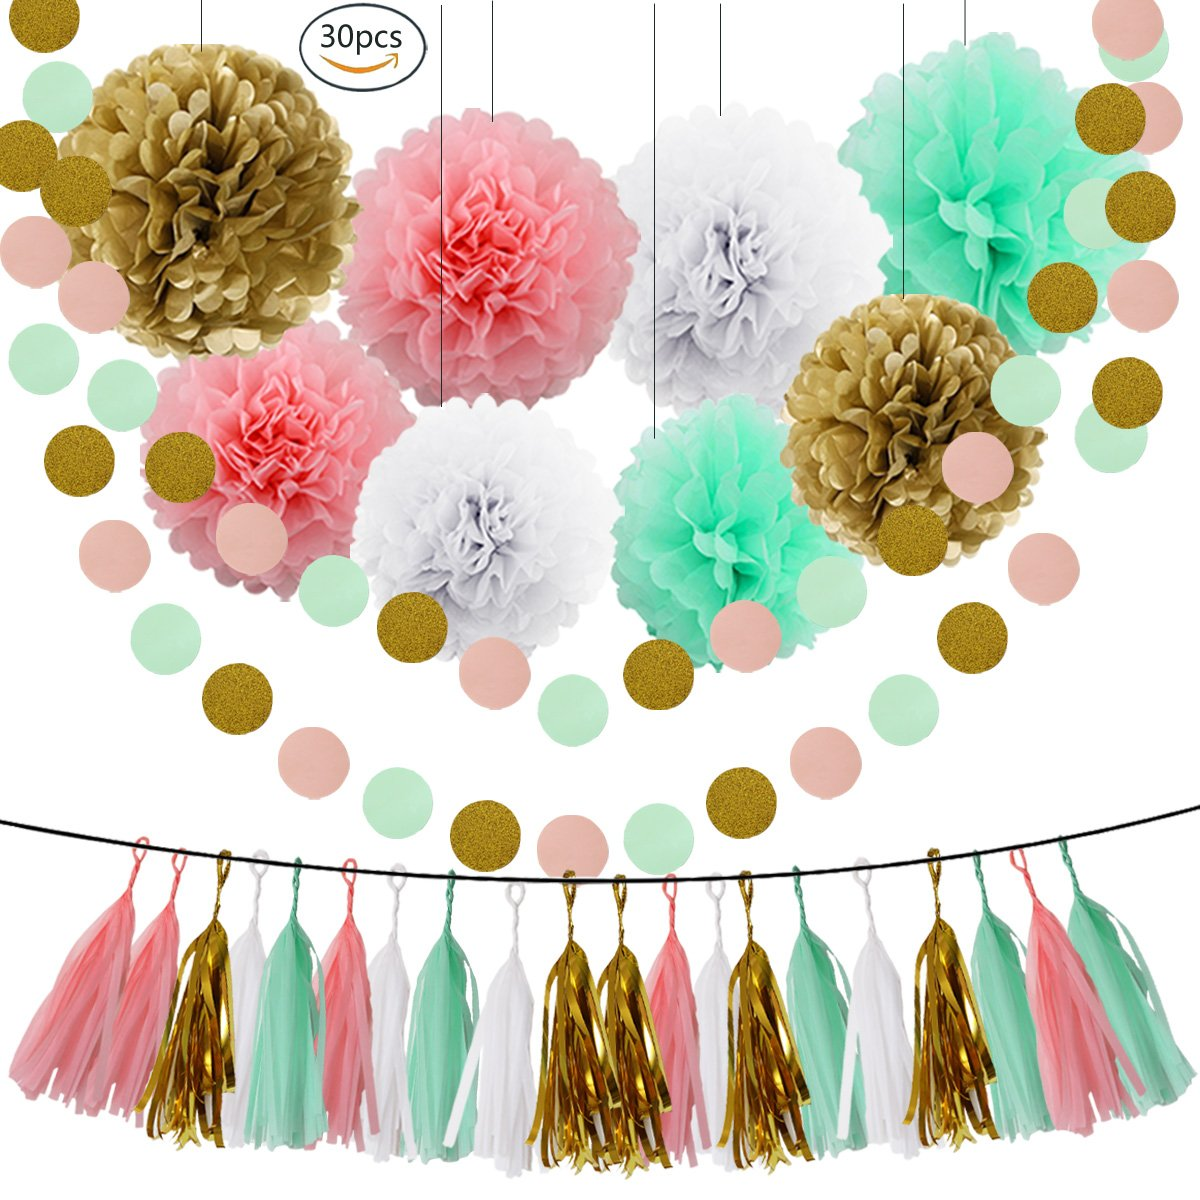 HEARTFEEL Bridal Shower Decorations Mint Baby Pink White Gold Tissue Pom Poms Paper Flowers Ball Tassel Garland Best for Mint Theme Party Decorations Birthday Baby Shower Wedding Nursery Decoration